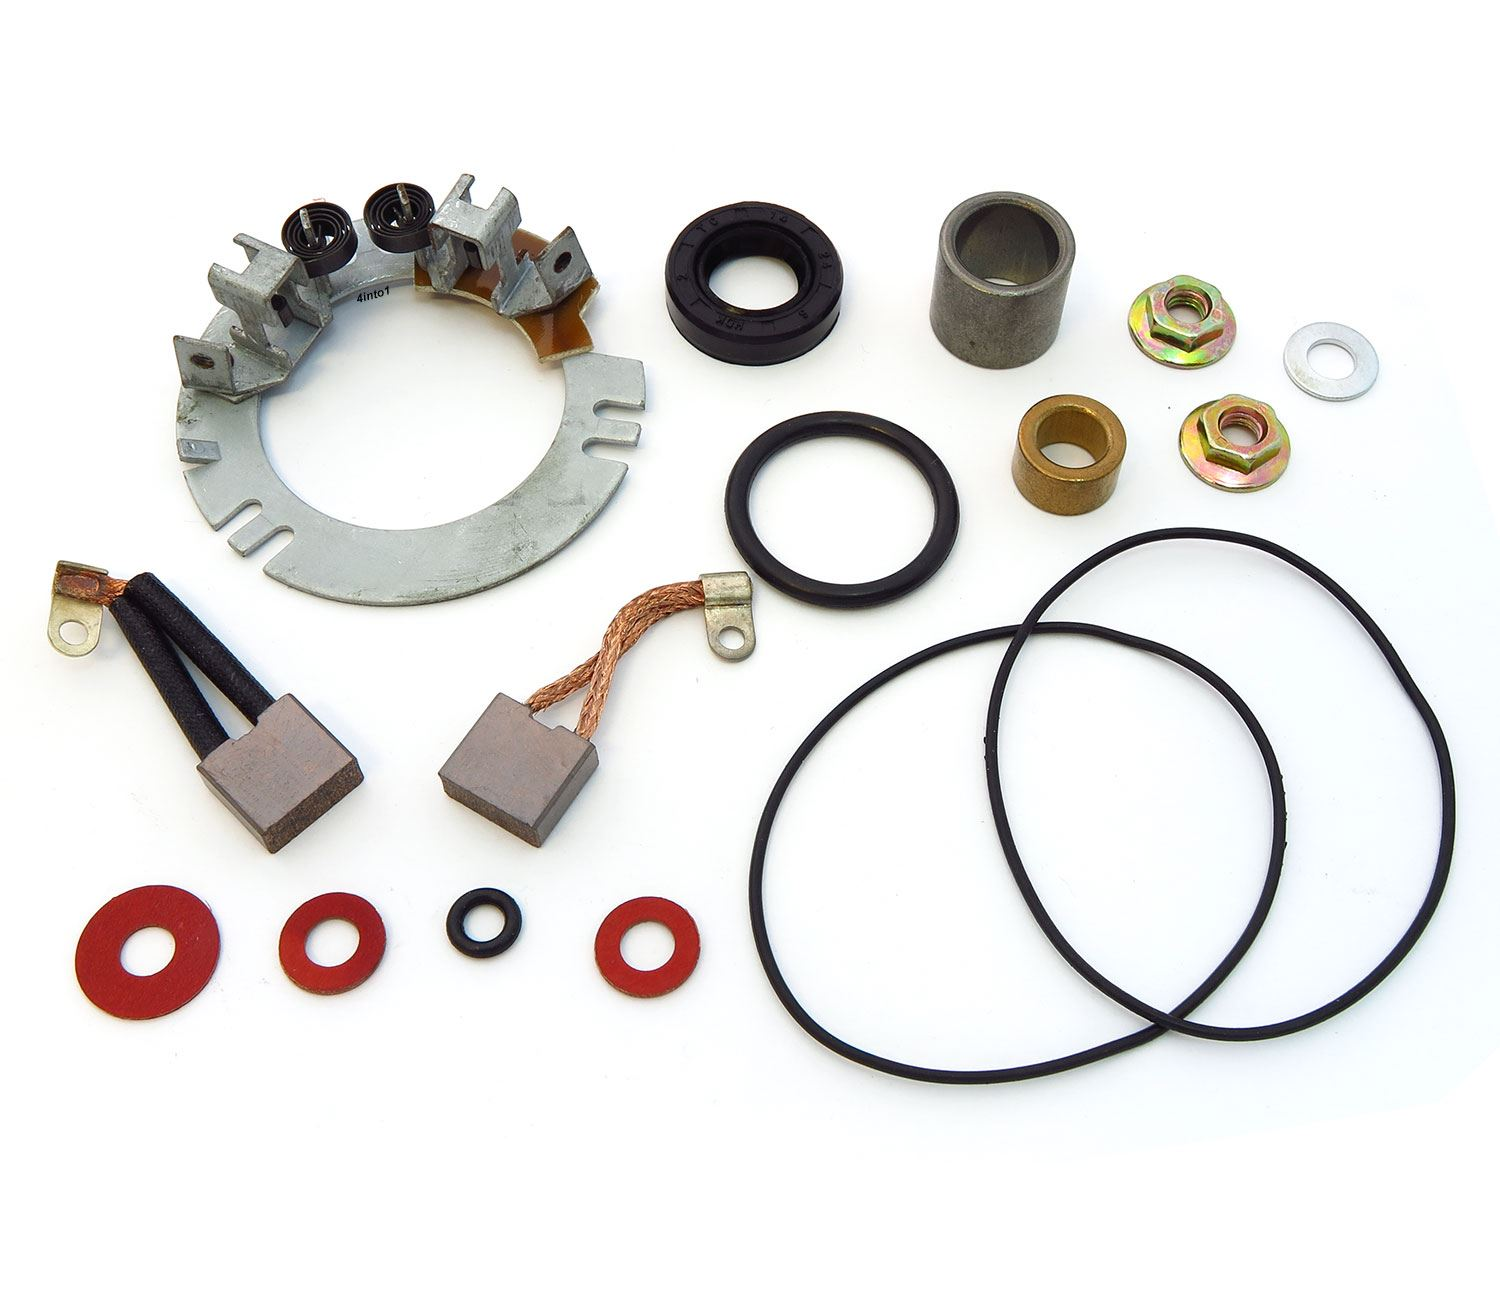 Honda Cx500 Turbo Parts For Sale: Arrowhead Starter Motor Rebuild Kit